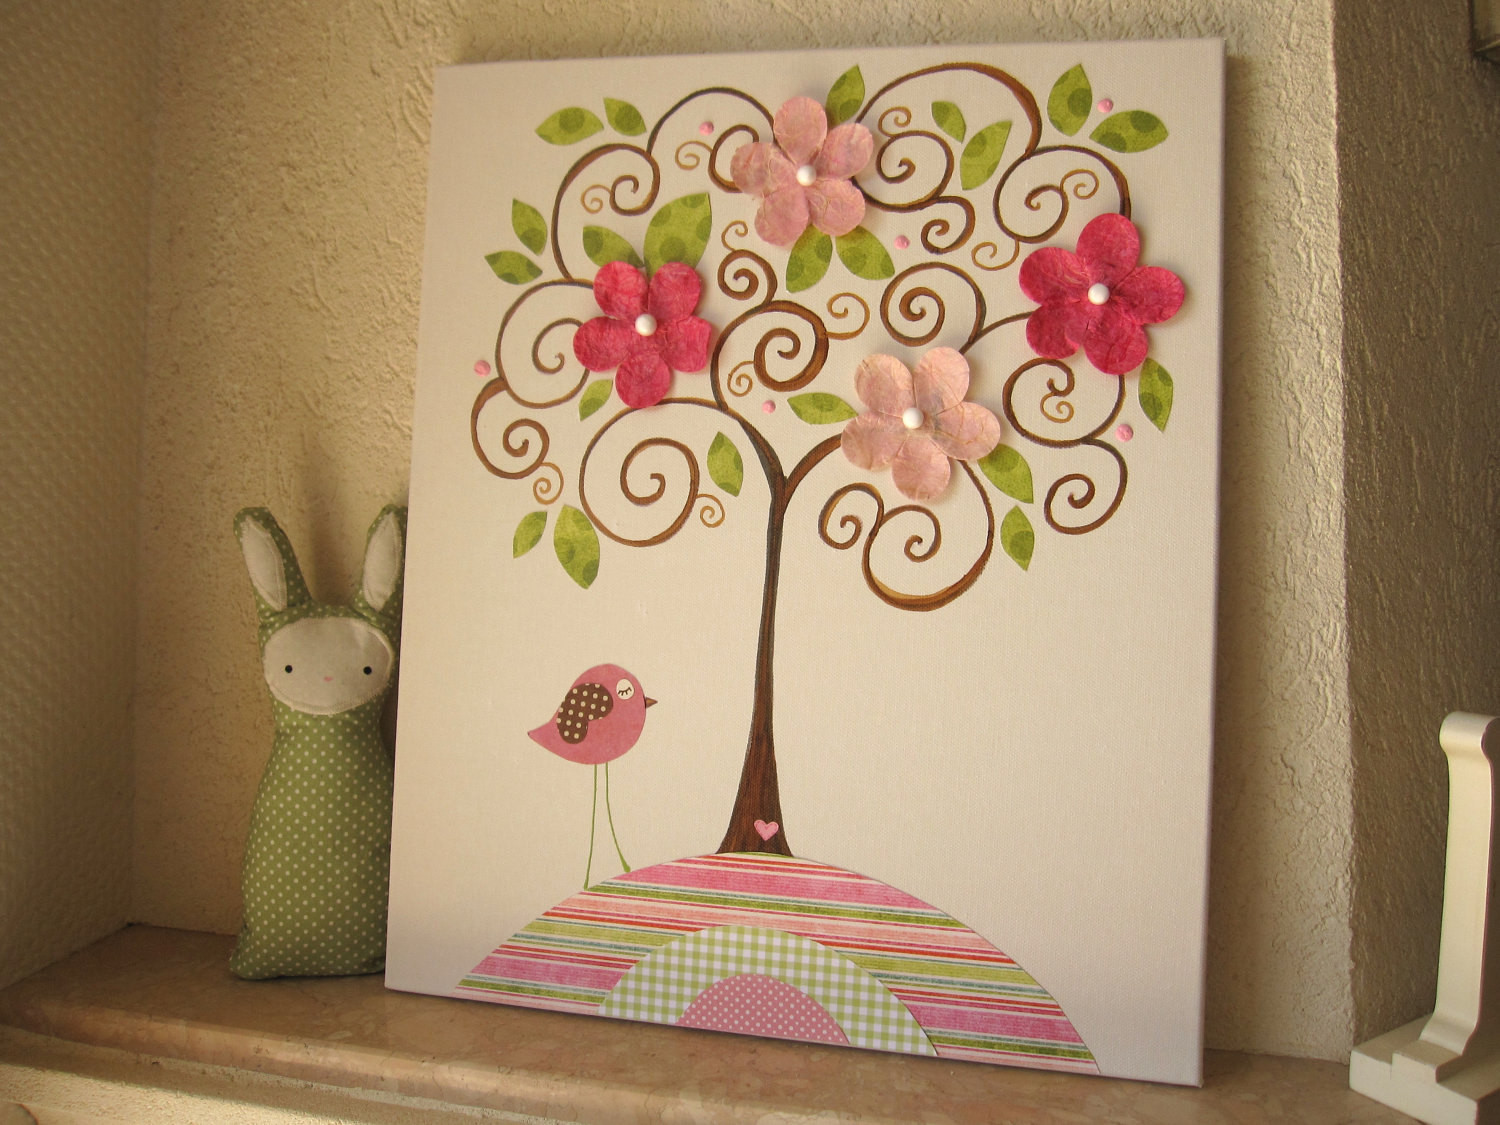 Best ideas about Kids Room Wall Art . Save or Pin Nursery Kids Room Decor Canvas Artwork Girls Now.